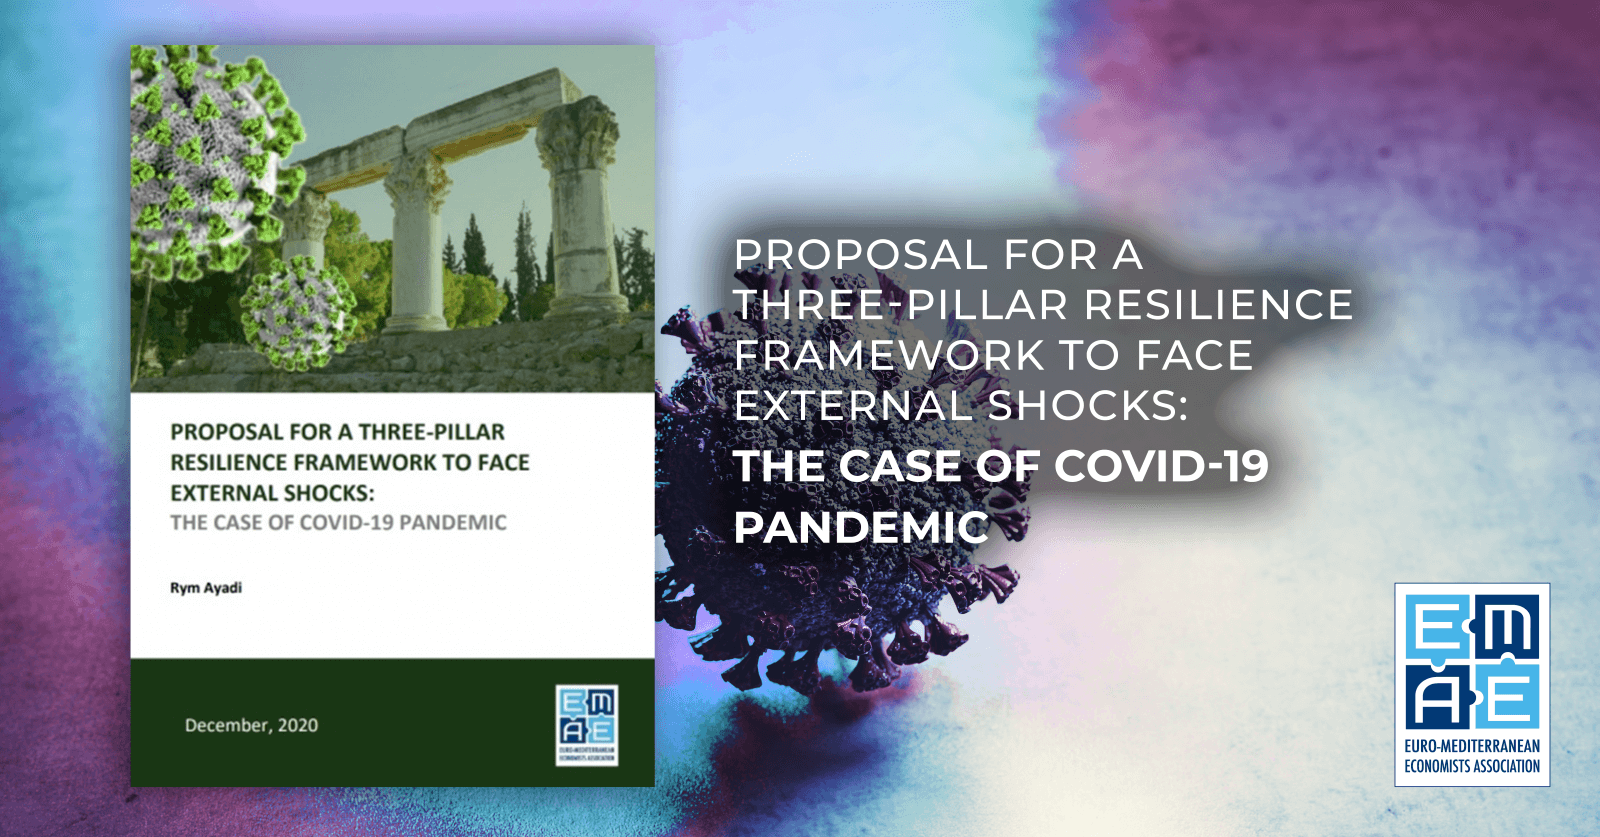 New EMEA policy paper – Proposal for a Three-Pillar Resilience Framework to Face External Shocks: The Case of Covid-19 Pandemic